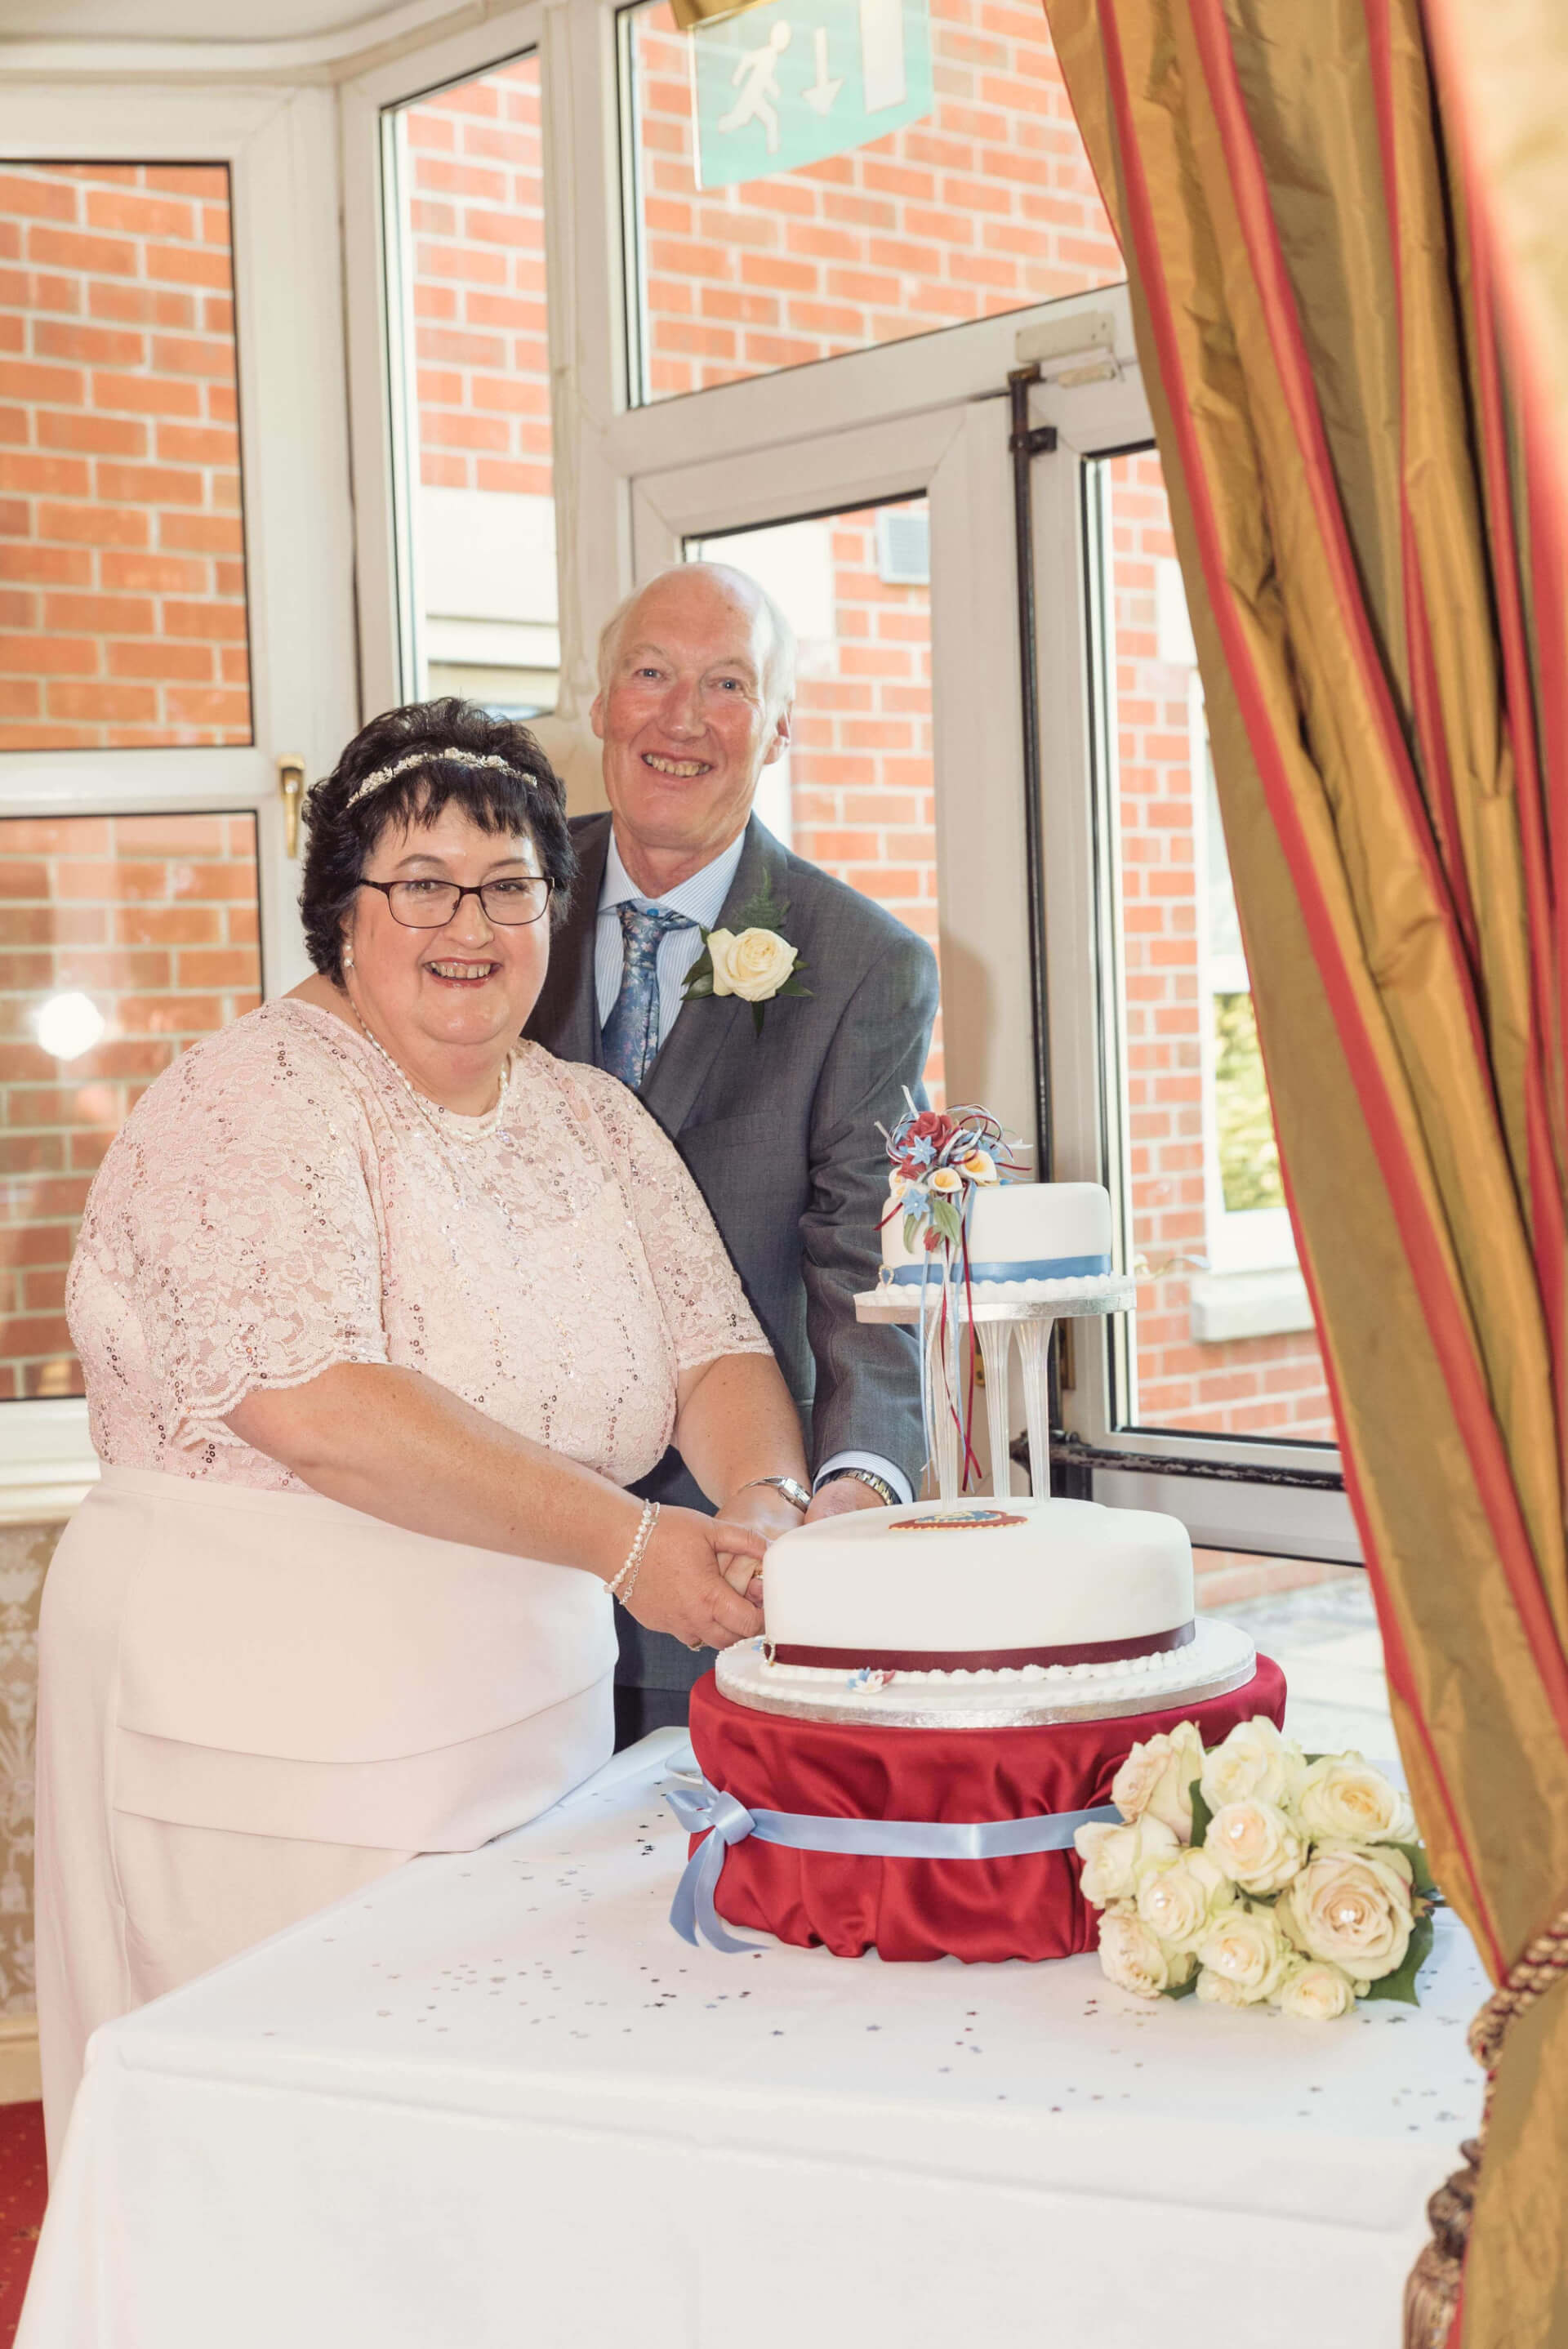 Bride and Groom cake cutting - wedding photography - By Slice of Life Photography